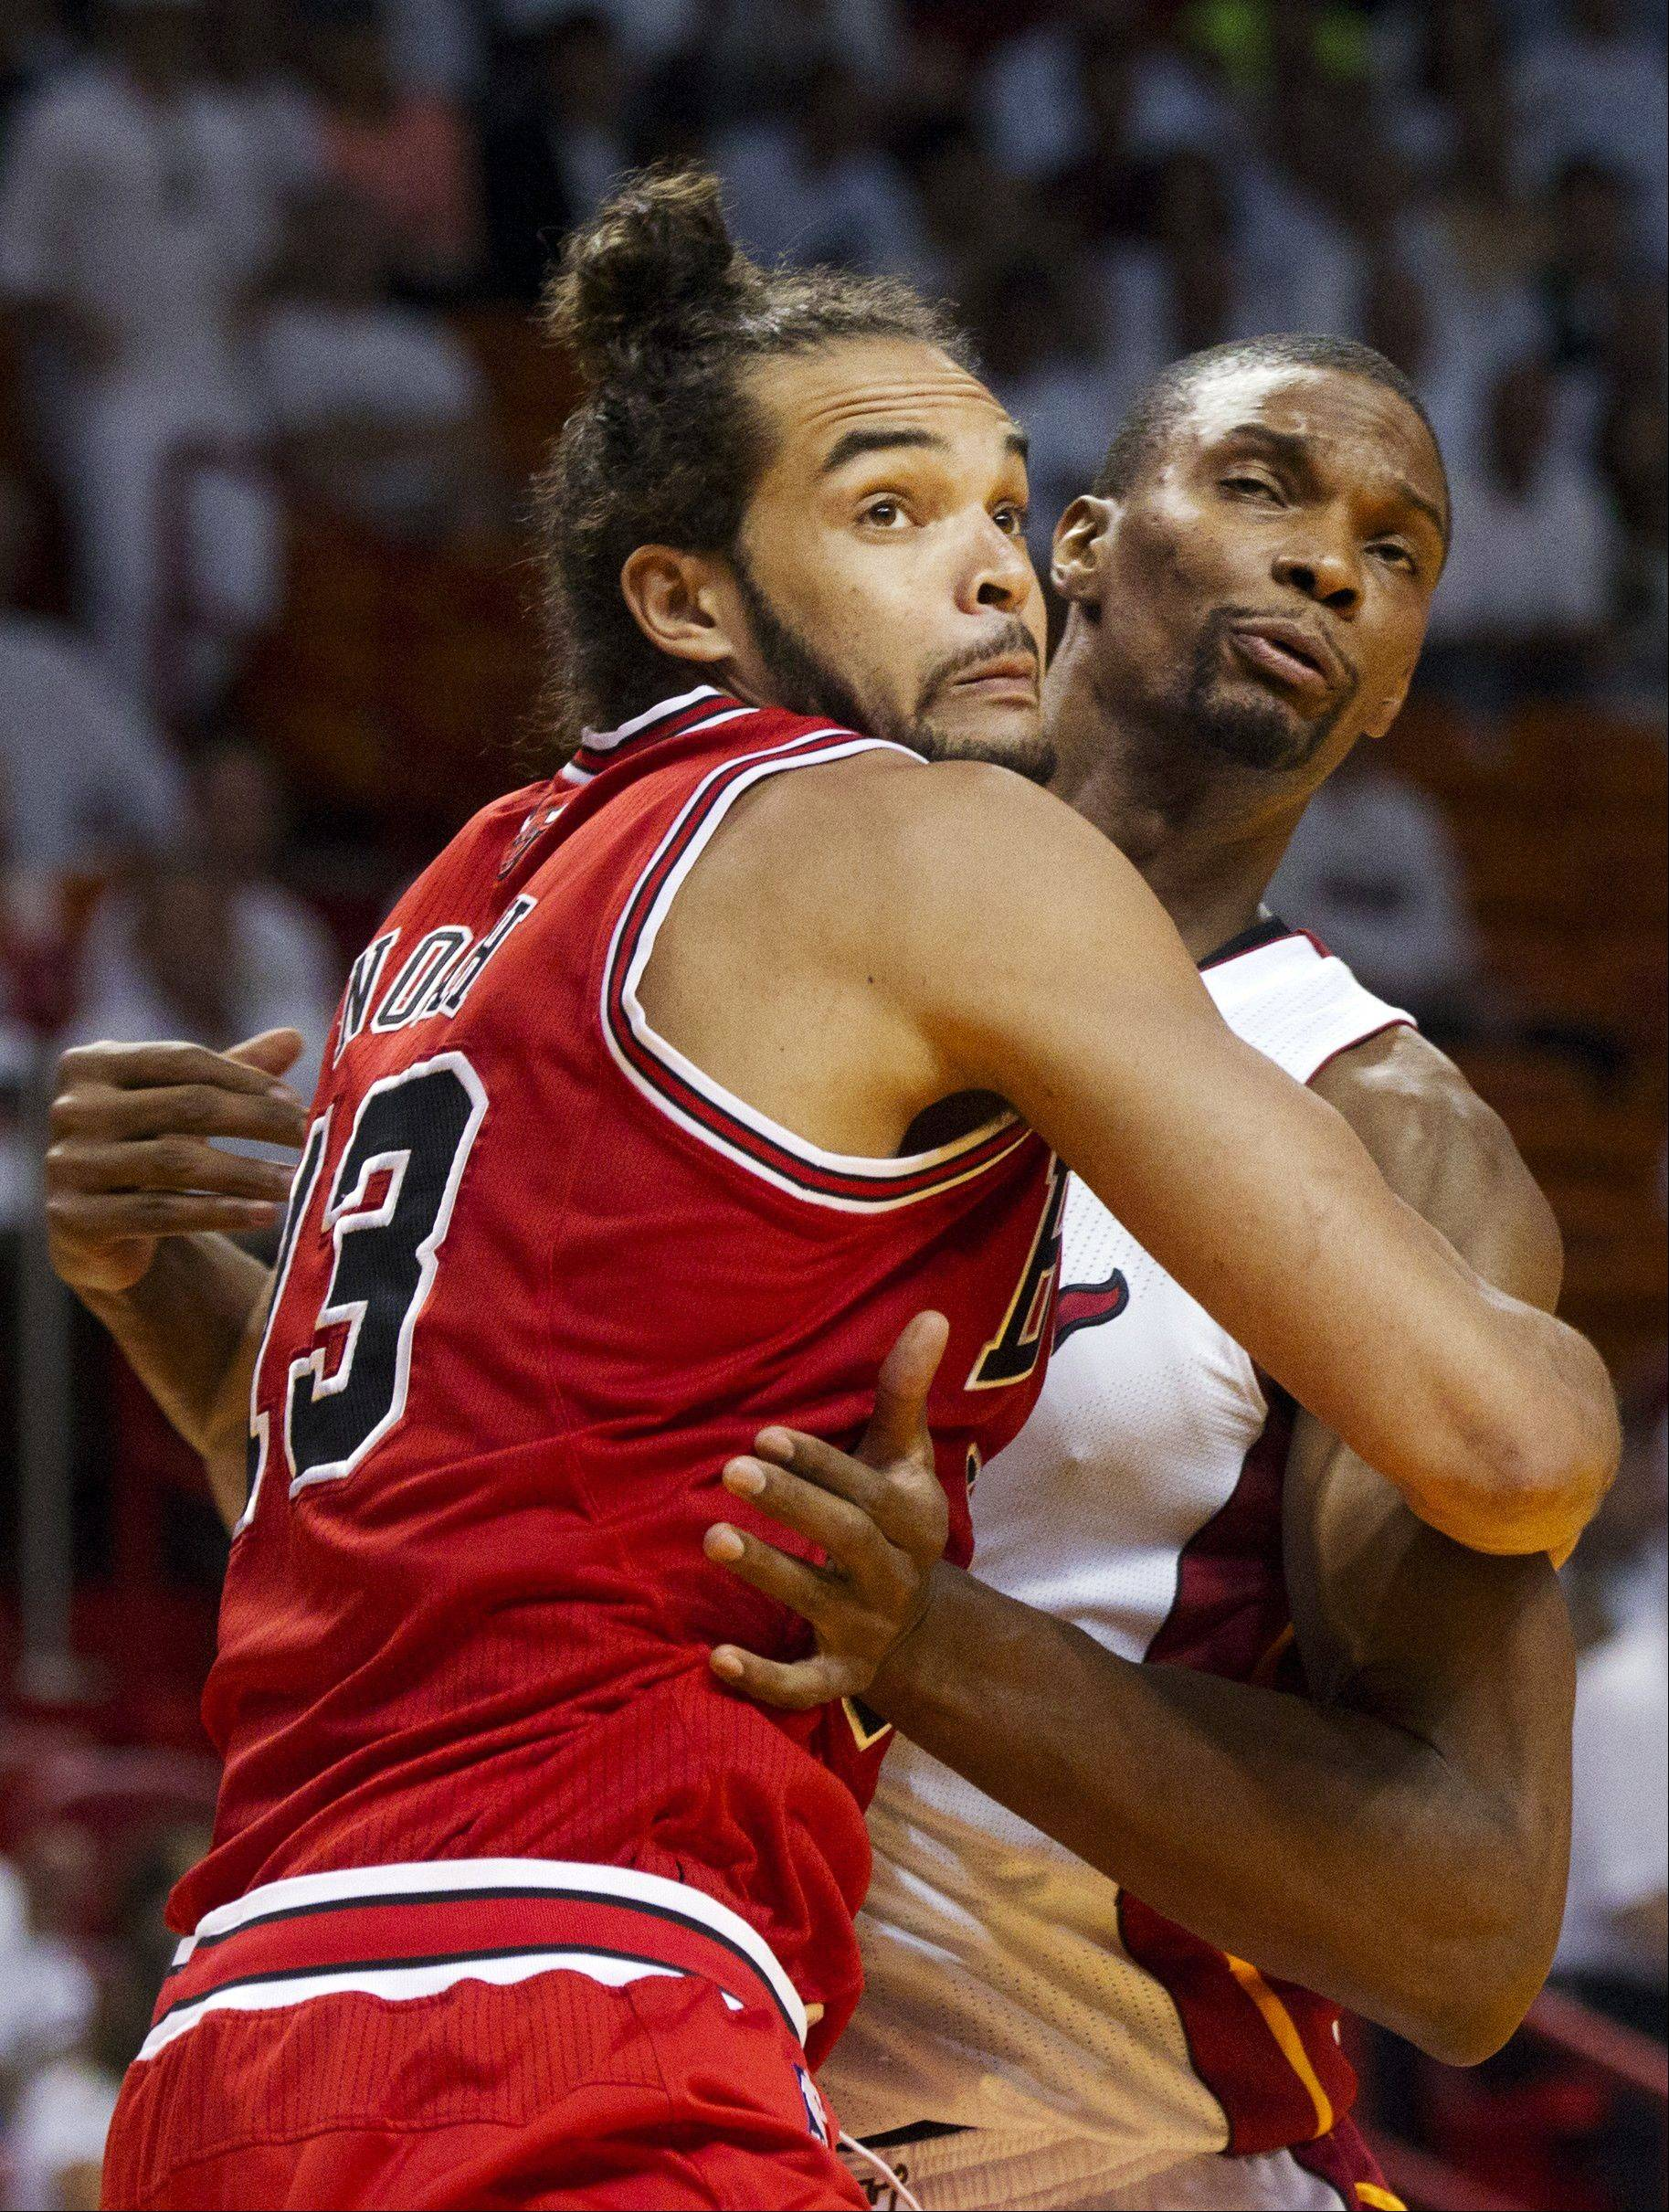 Chicago Bulls' Joakim Noah and Miami Heat's Chris Bosh tangle while waiting for a rebound during Game 2 of their NBA basketball playoff series in the Eastern Conference semifinals on Wednesday, May 8, 2013, in Miami.